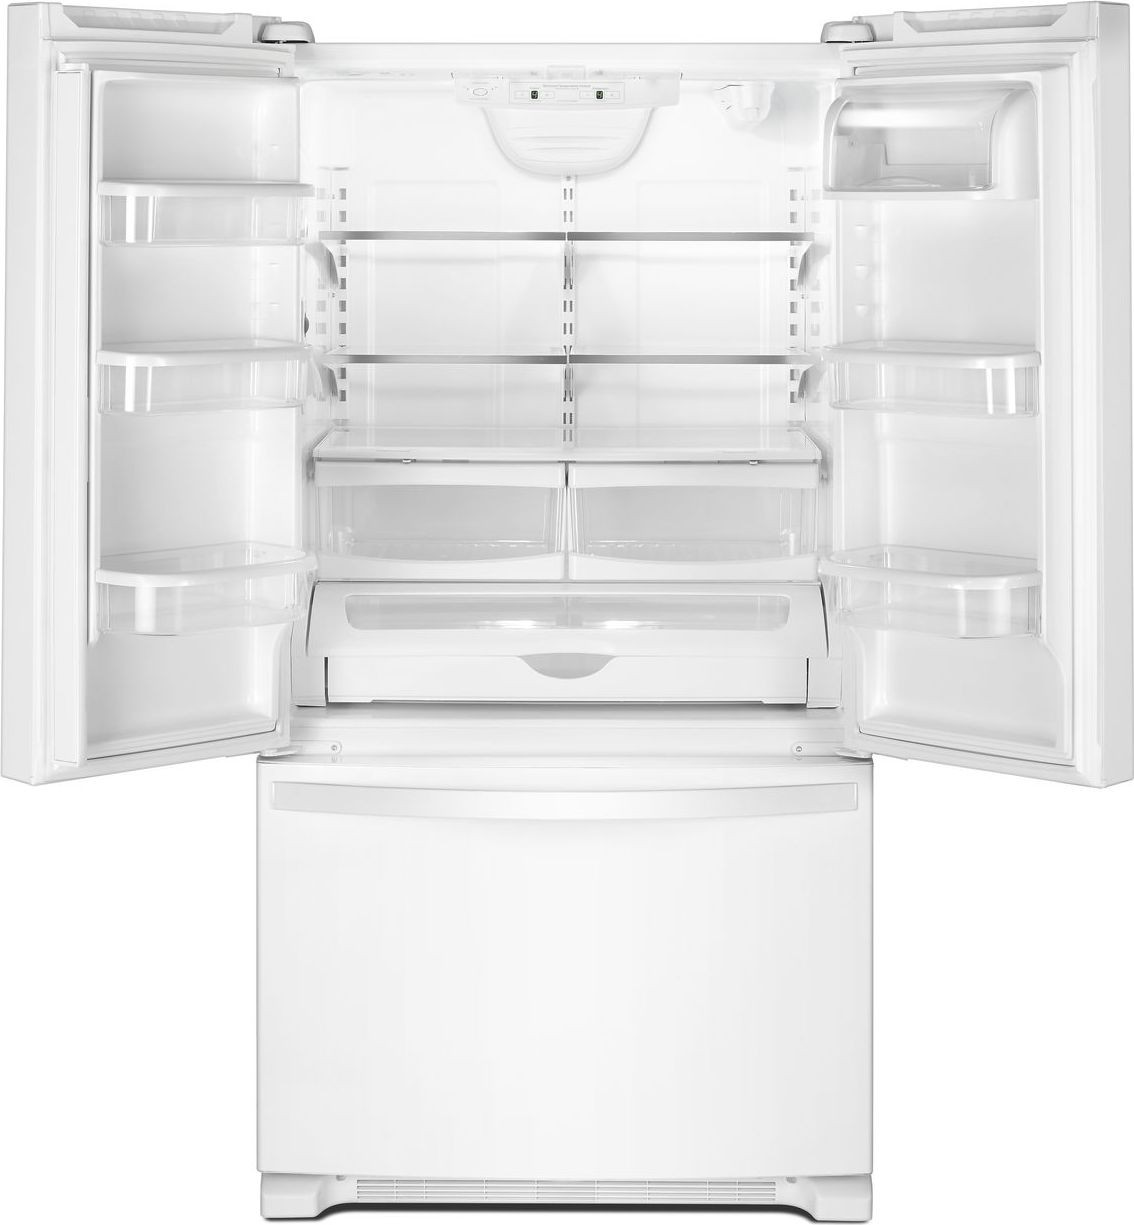 Wrf532smhw 33 Quot 22 Cu Ft French Door Refrigerator White